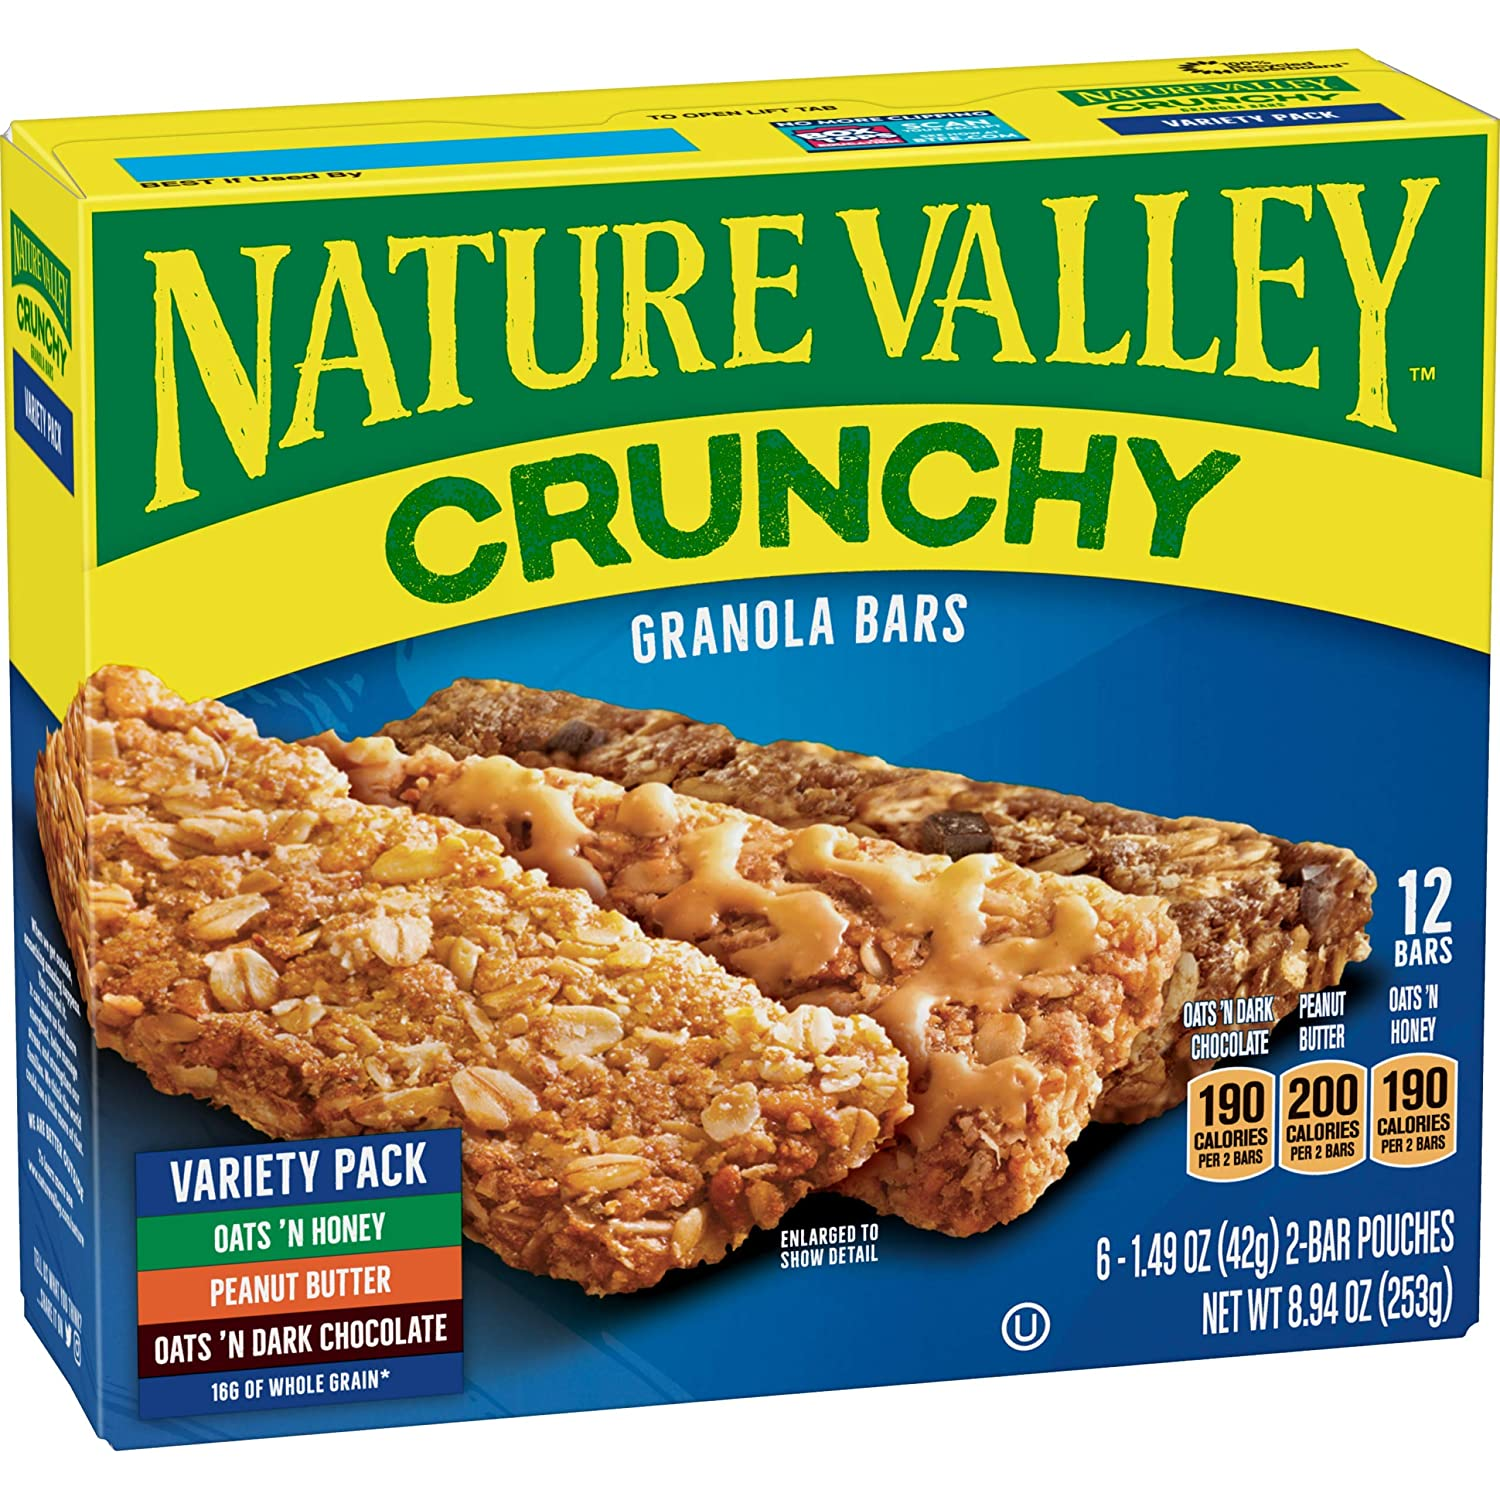 Nature Valley Granola Bars, Crunchy, Variety Pack of Oats 'n Dark Chocolate, Peanut Butter, Oats 'n Honey, 12-Bars Per Box (Pack of 6)